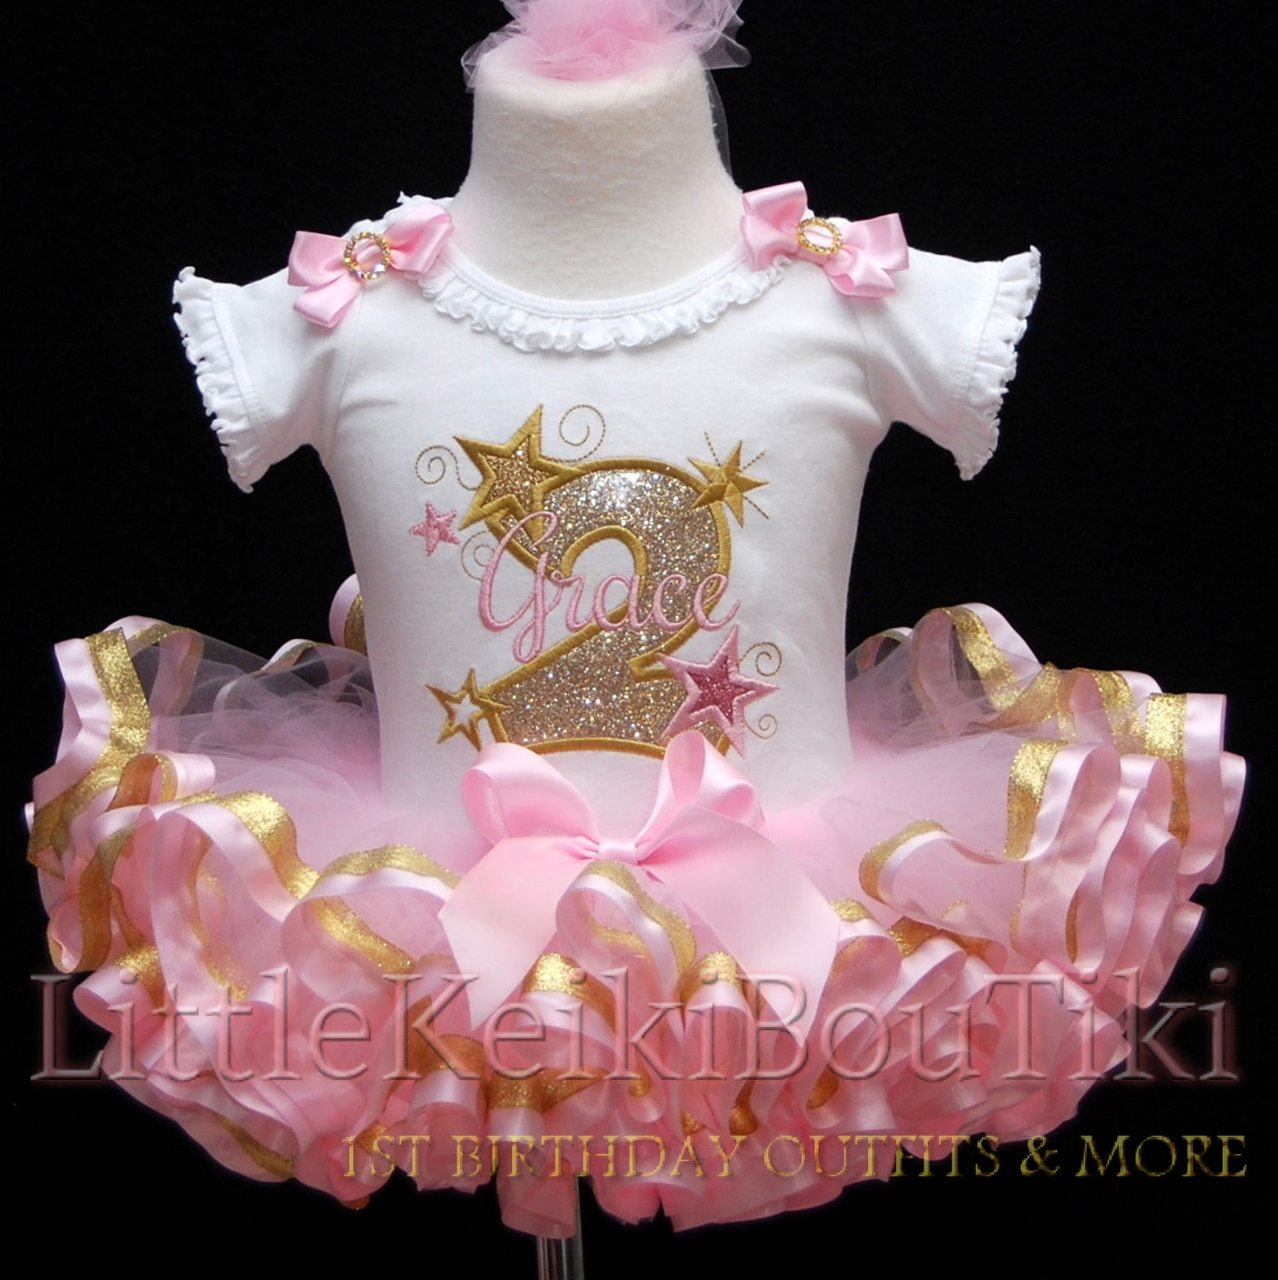 2nd Birthday Sparkle Outfit